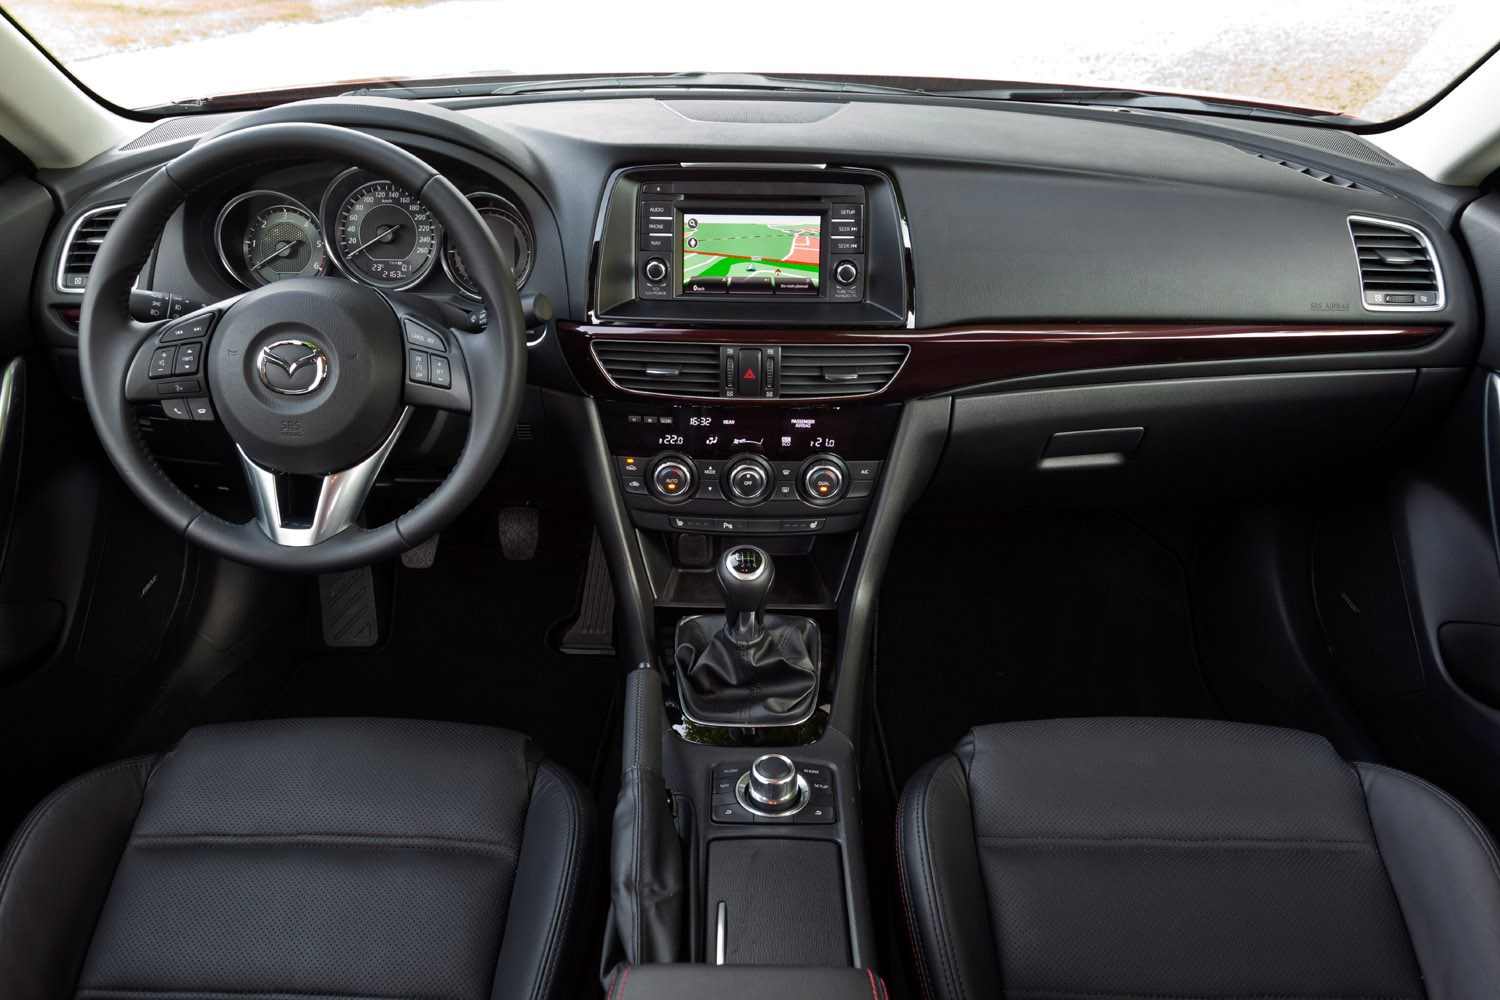 https://parkers-images.bauersecure.com/pagefiles/202906/main-interior/mazda6_wagon_paris(37).jpg